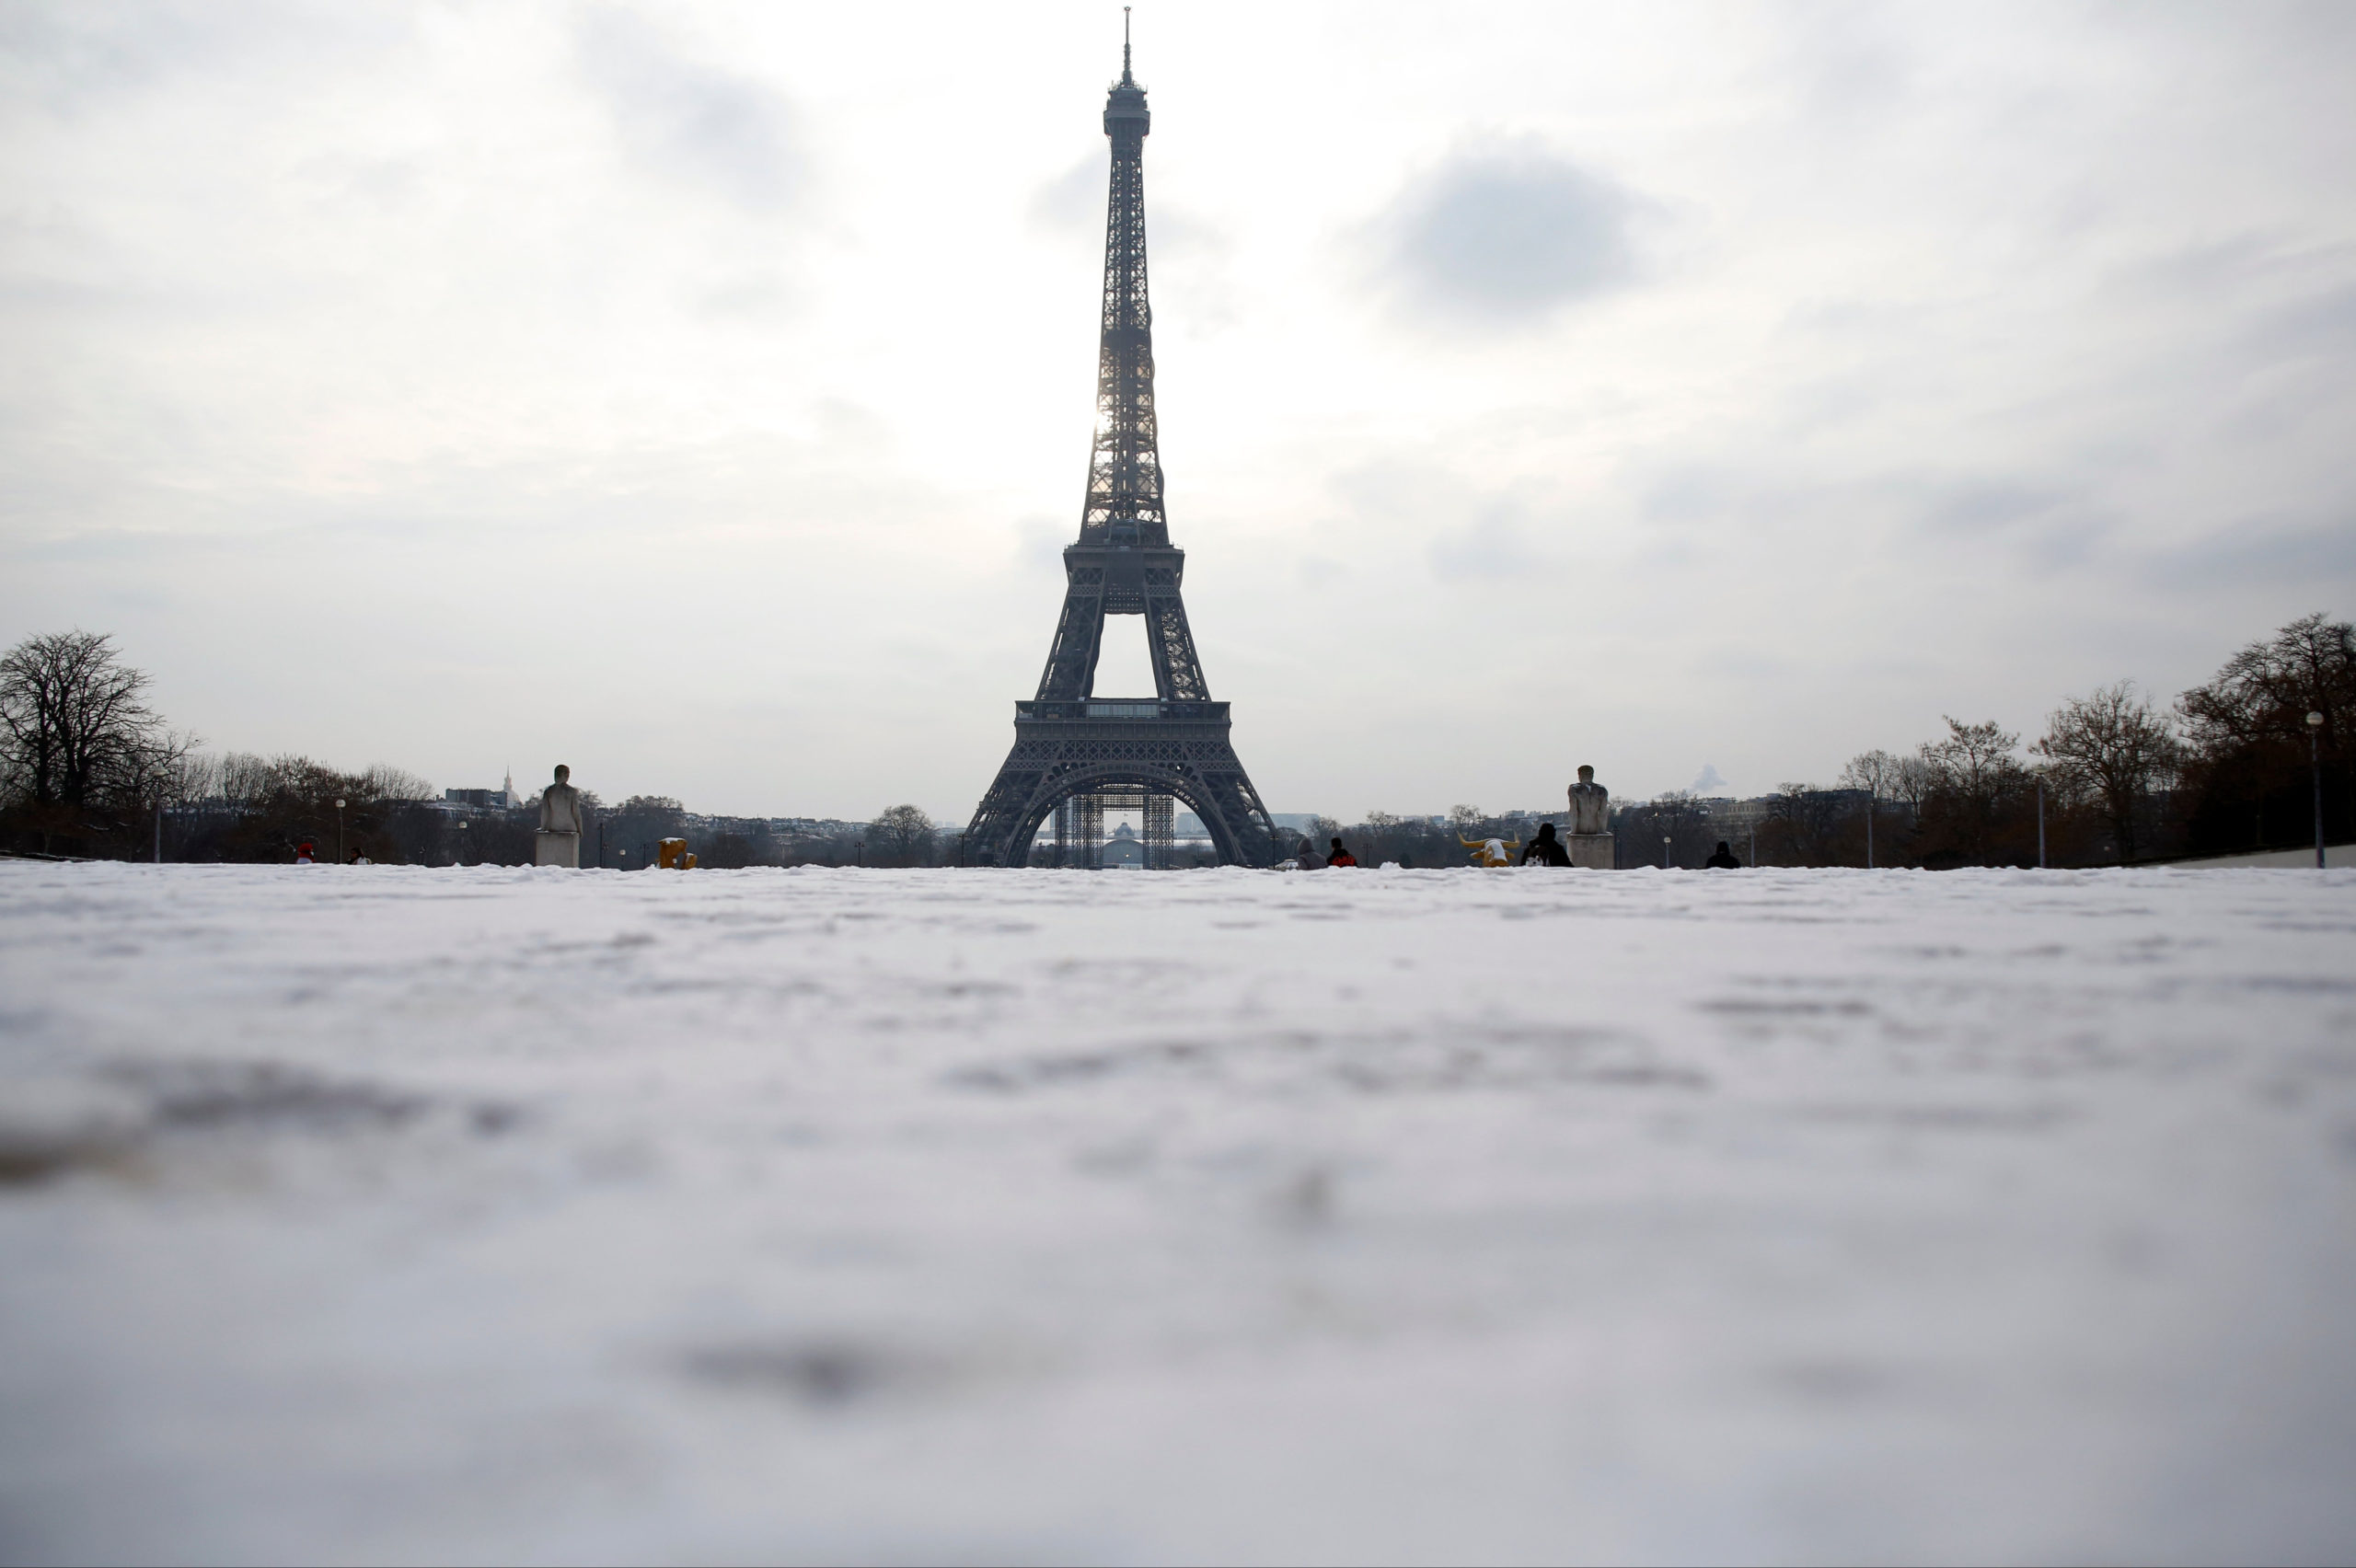 Eiffel Tower workers use blowtorch to clear ice from monument